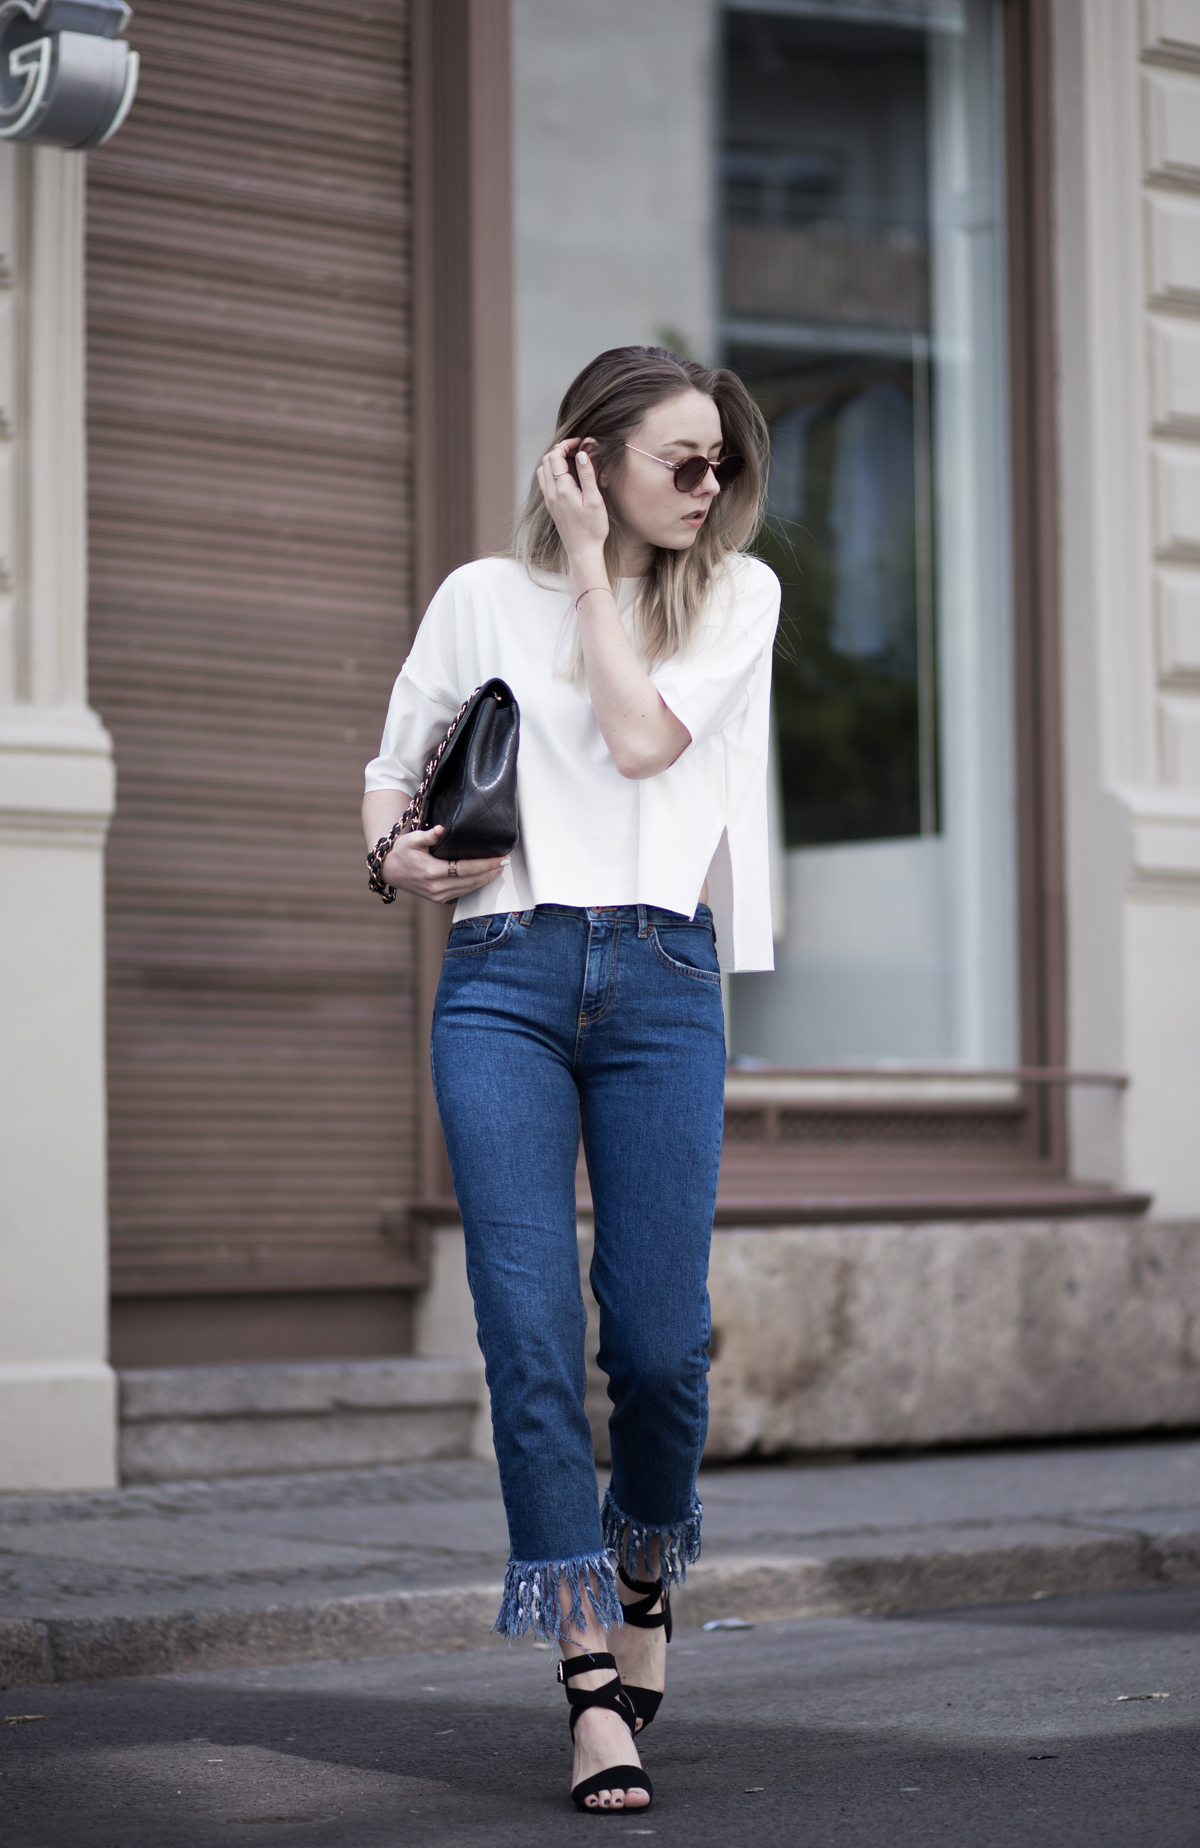 Fashion-Fashionblogger-Blogger-Berlin-Deutschland-Modeblog-Modeblogger-Germany-Outfit-Style-Asos-Missguided-Chanel-Fringed-Jeans